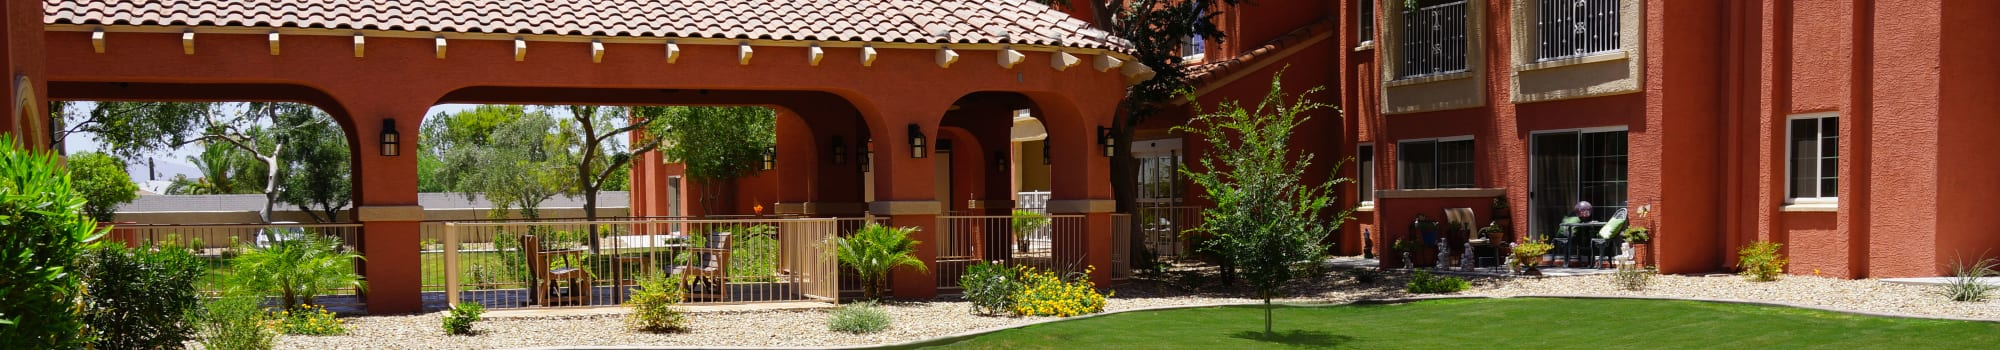 Floor Plans at Casa Del Rio Senior Living in Peoria, Arizona